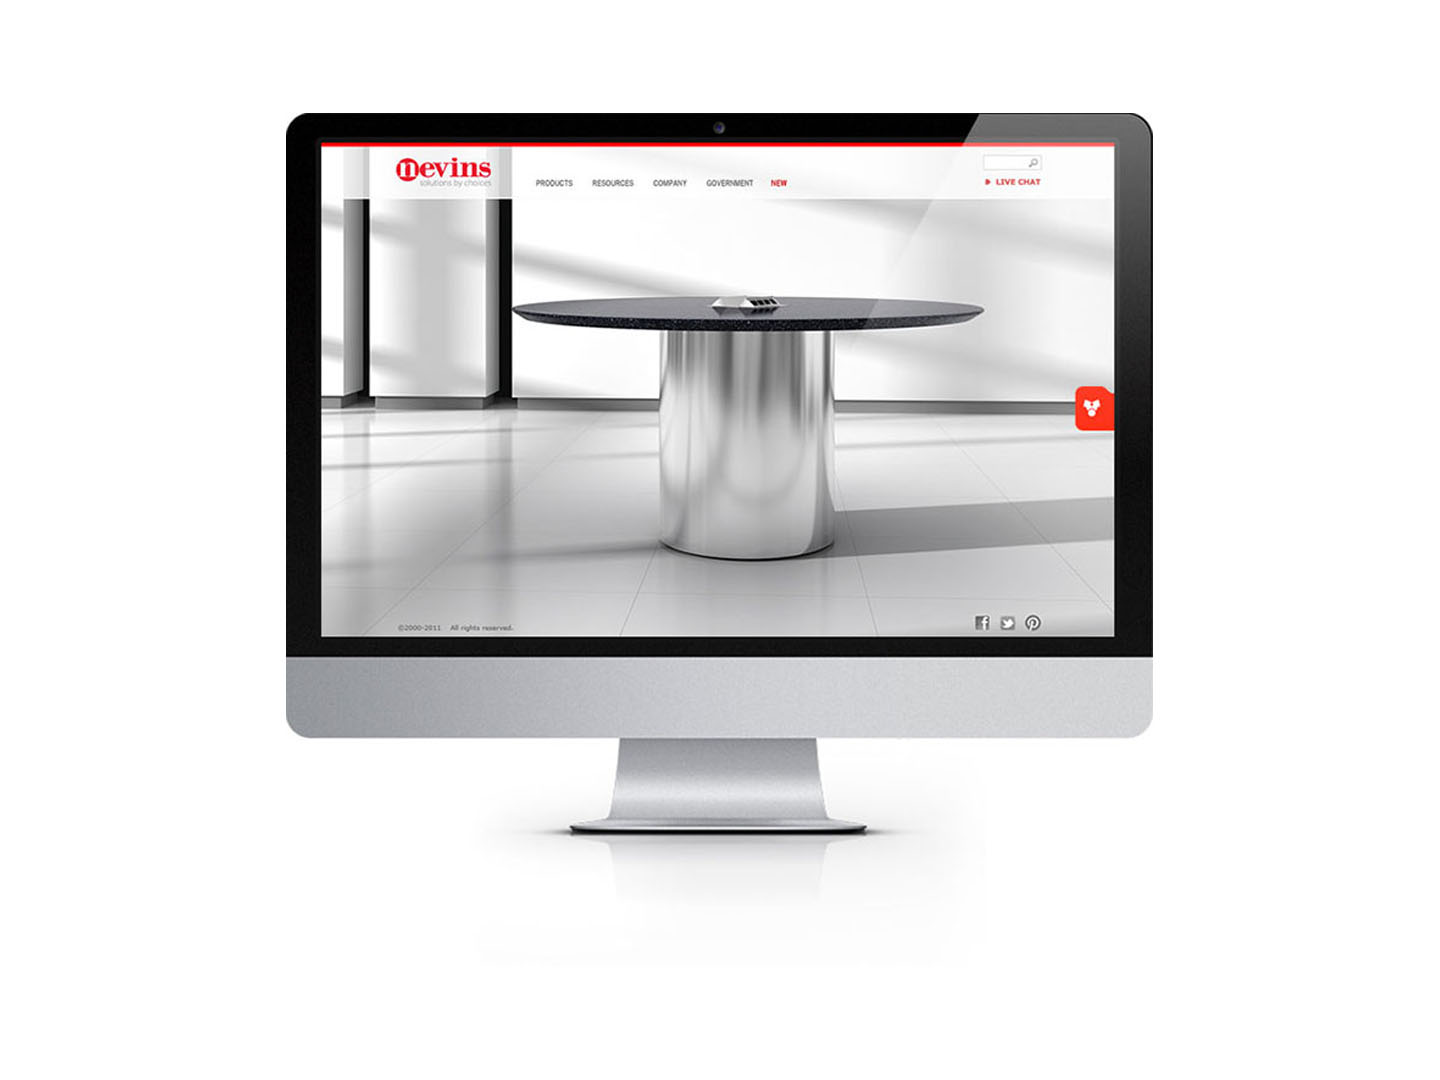 responsive website design on desktop imac